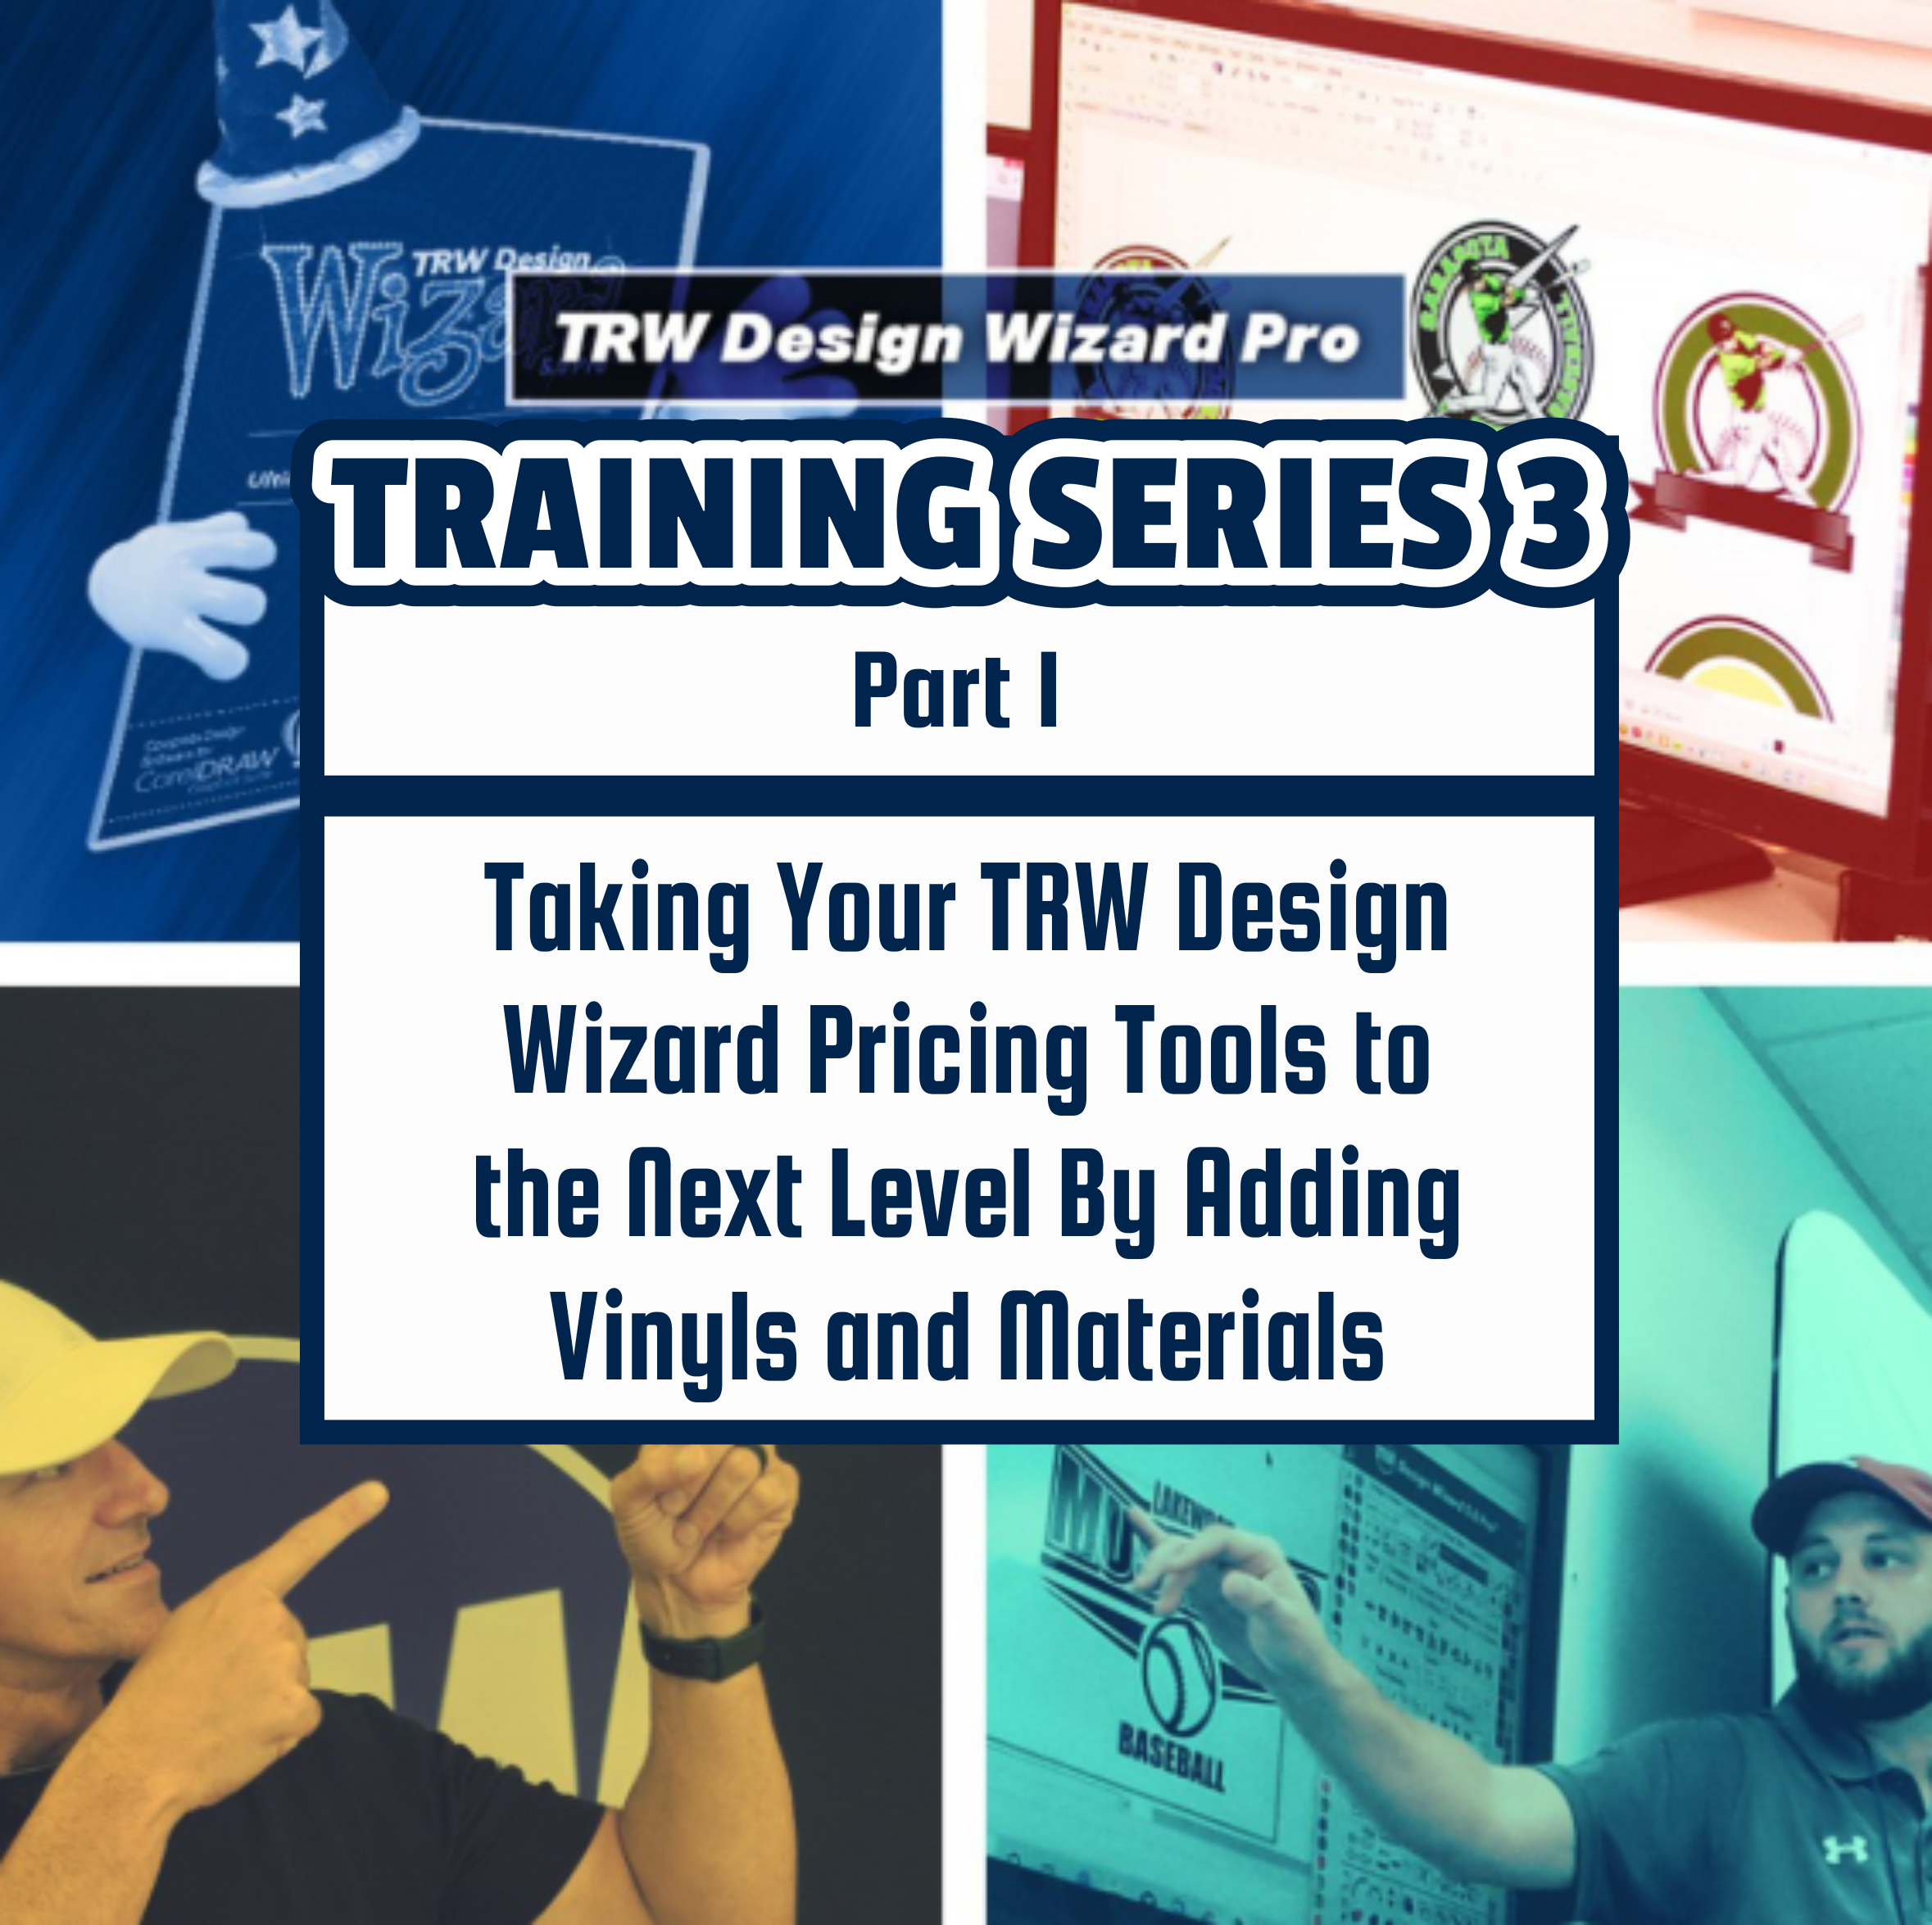 TRW Design Wizard Training Series 3 | Part One: Taking Your TRW Design Wizard Pricing Tools to the Next Level By Adding Vinyl and Materials| March April 6th 1pm-3pmET